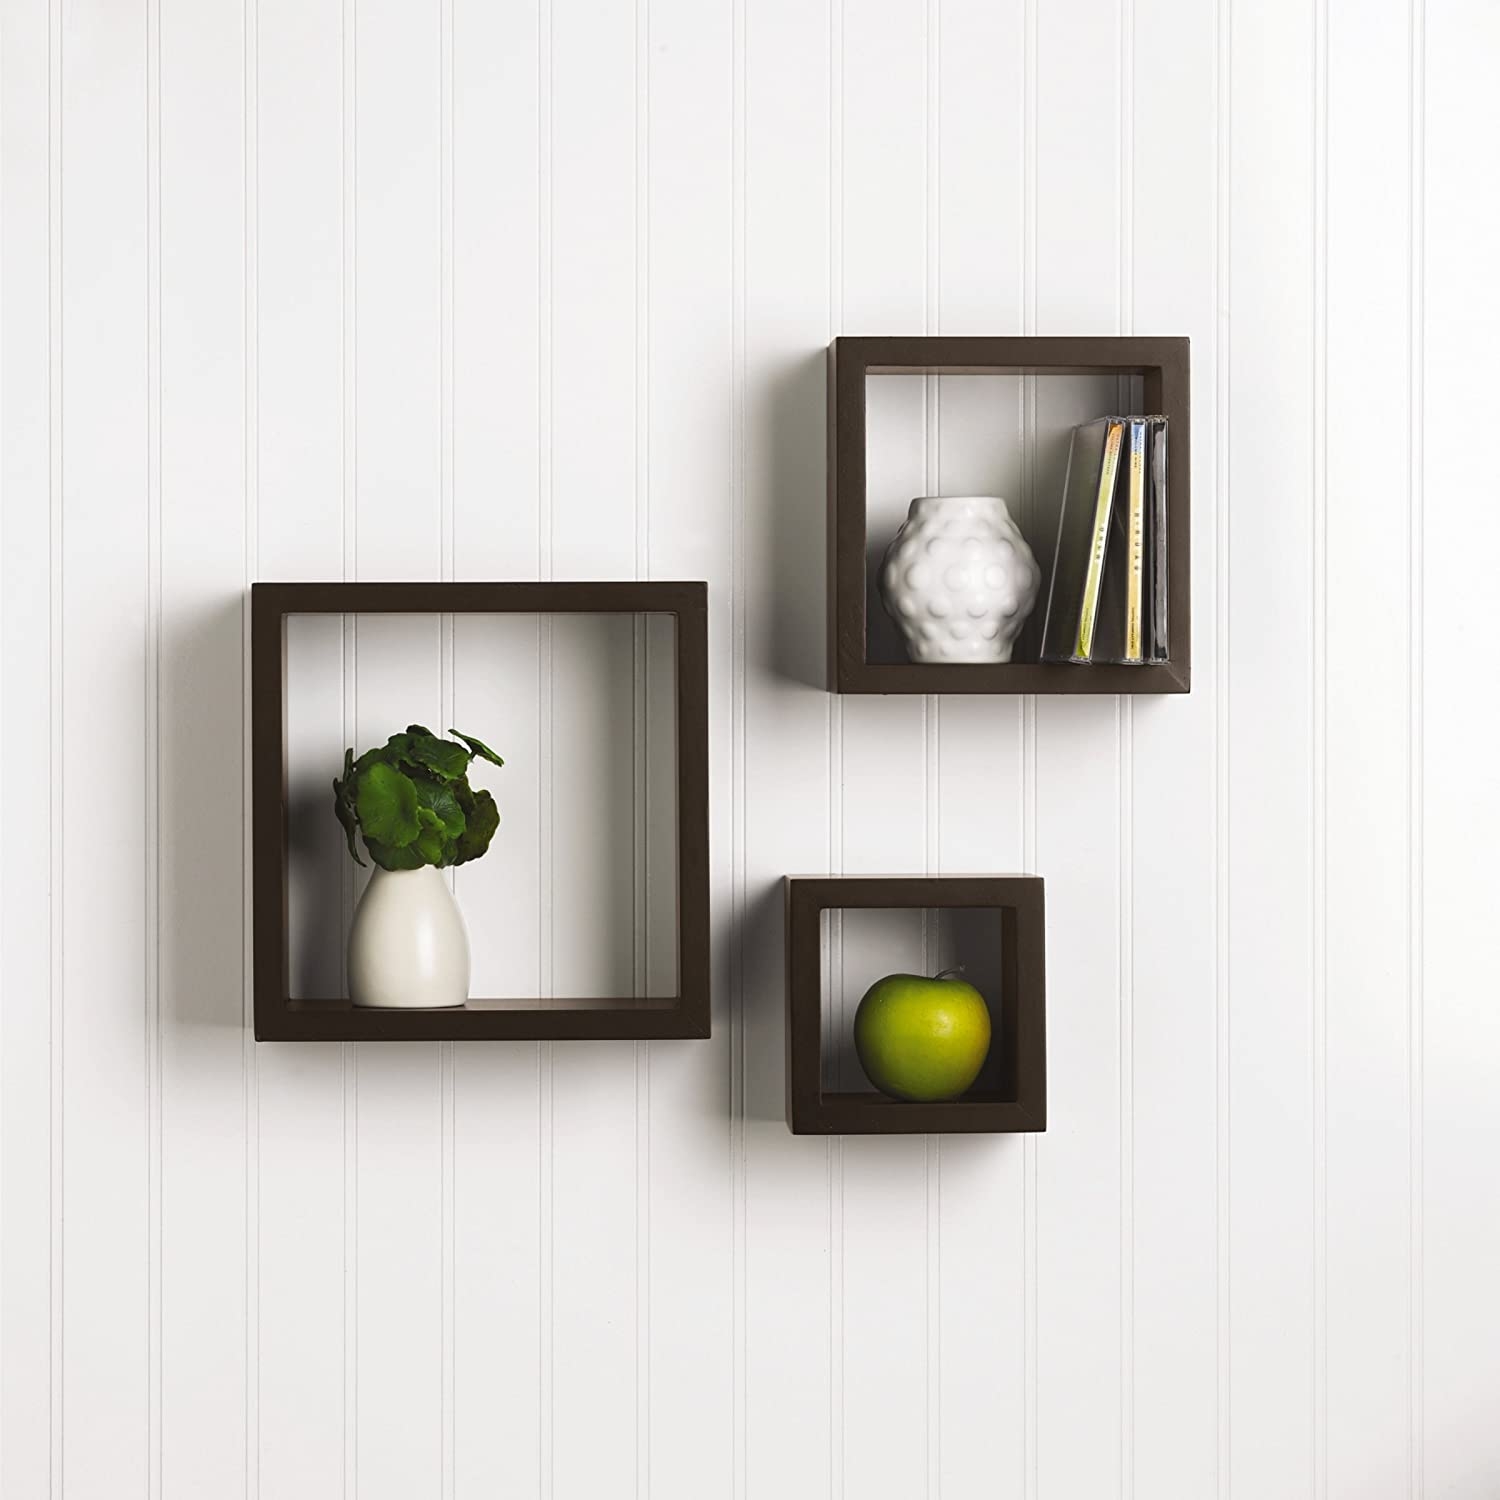 Amazon.com: Melannco Square Wood Shelves, Set of 3, Espresso: Home & Kitchen